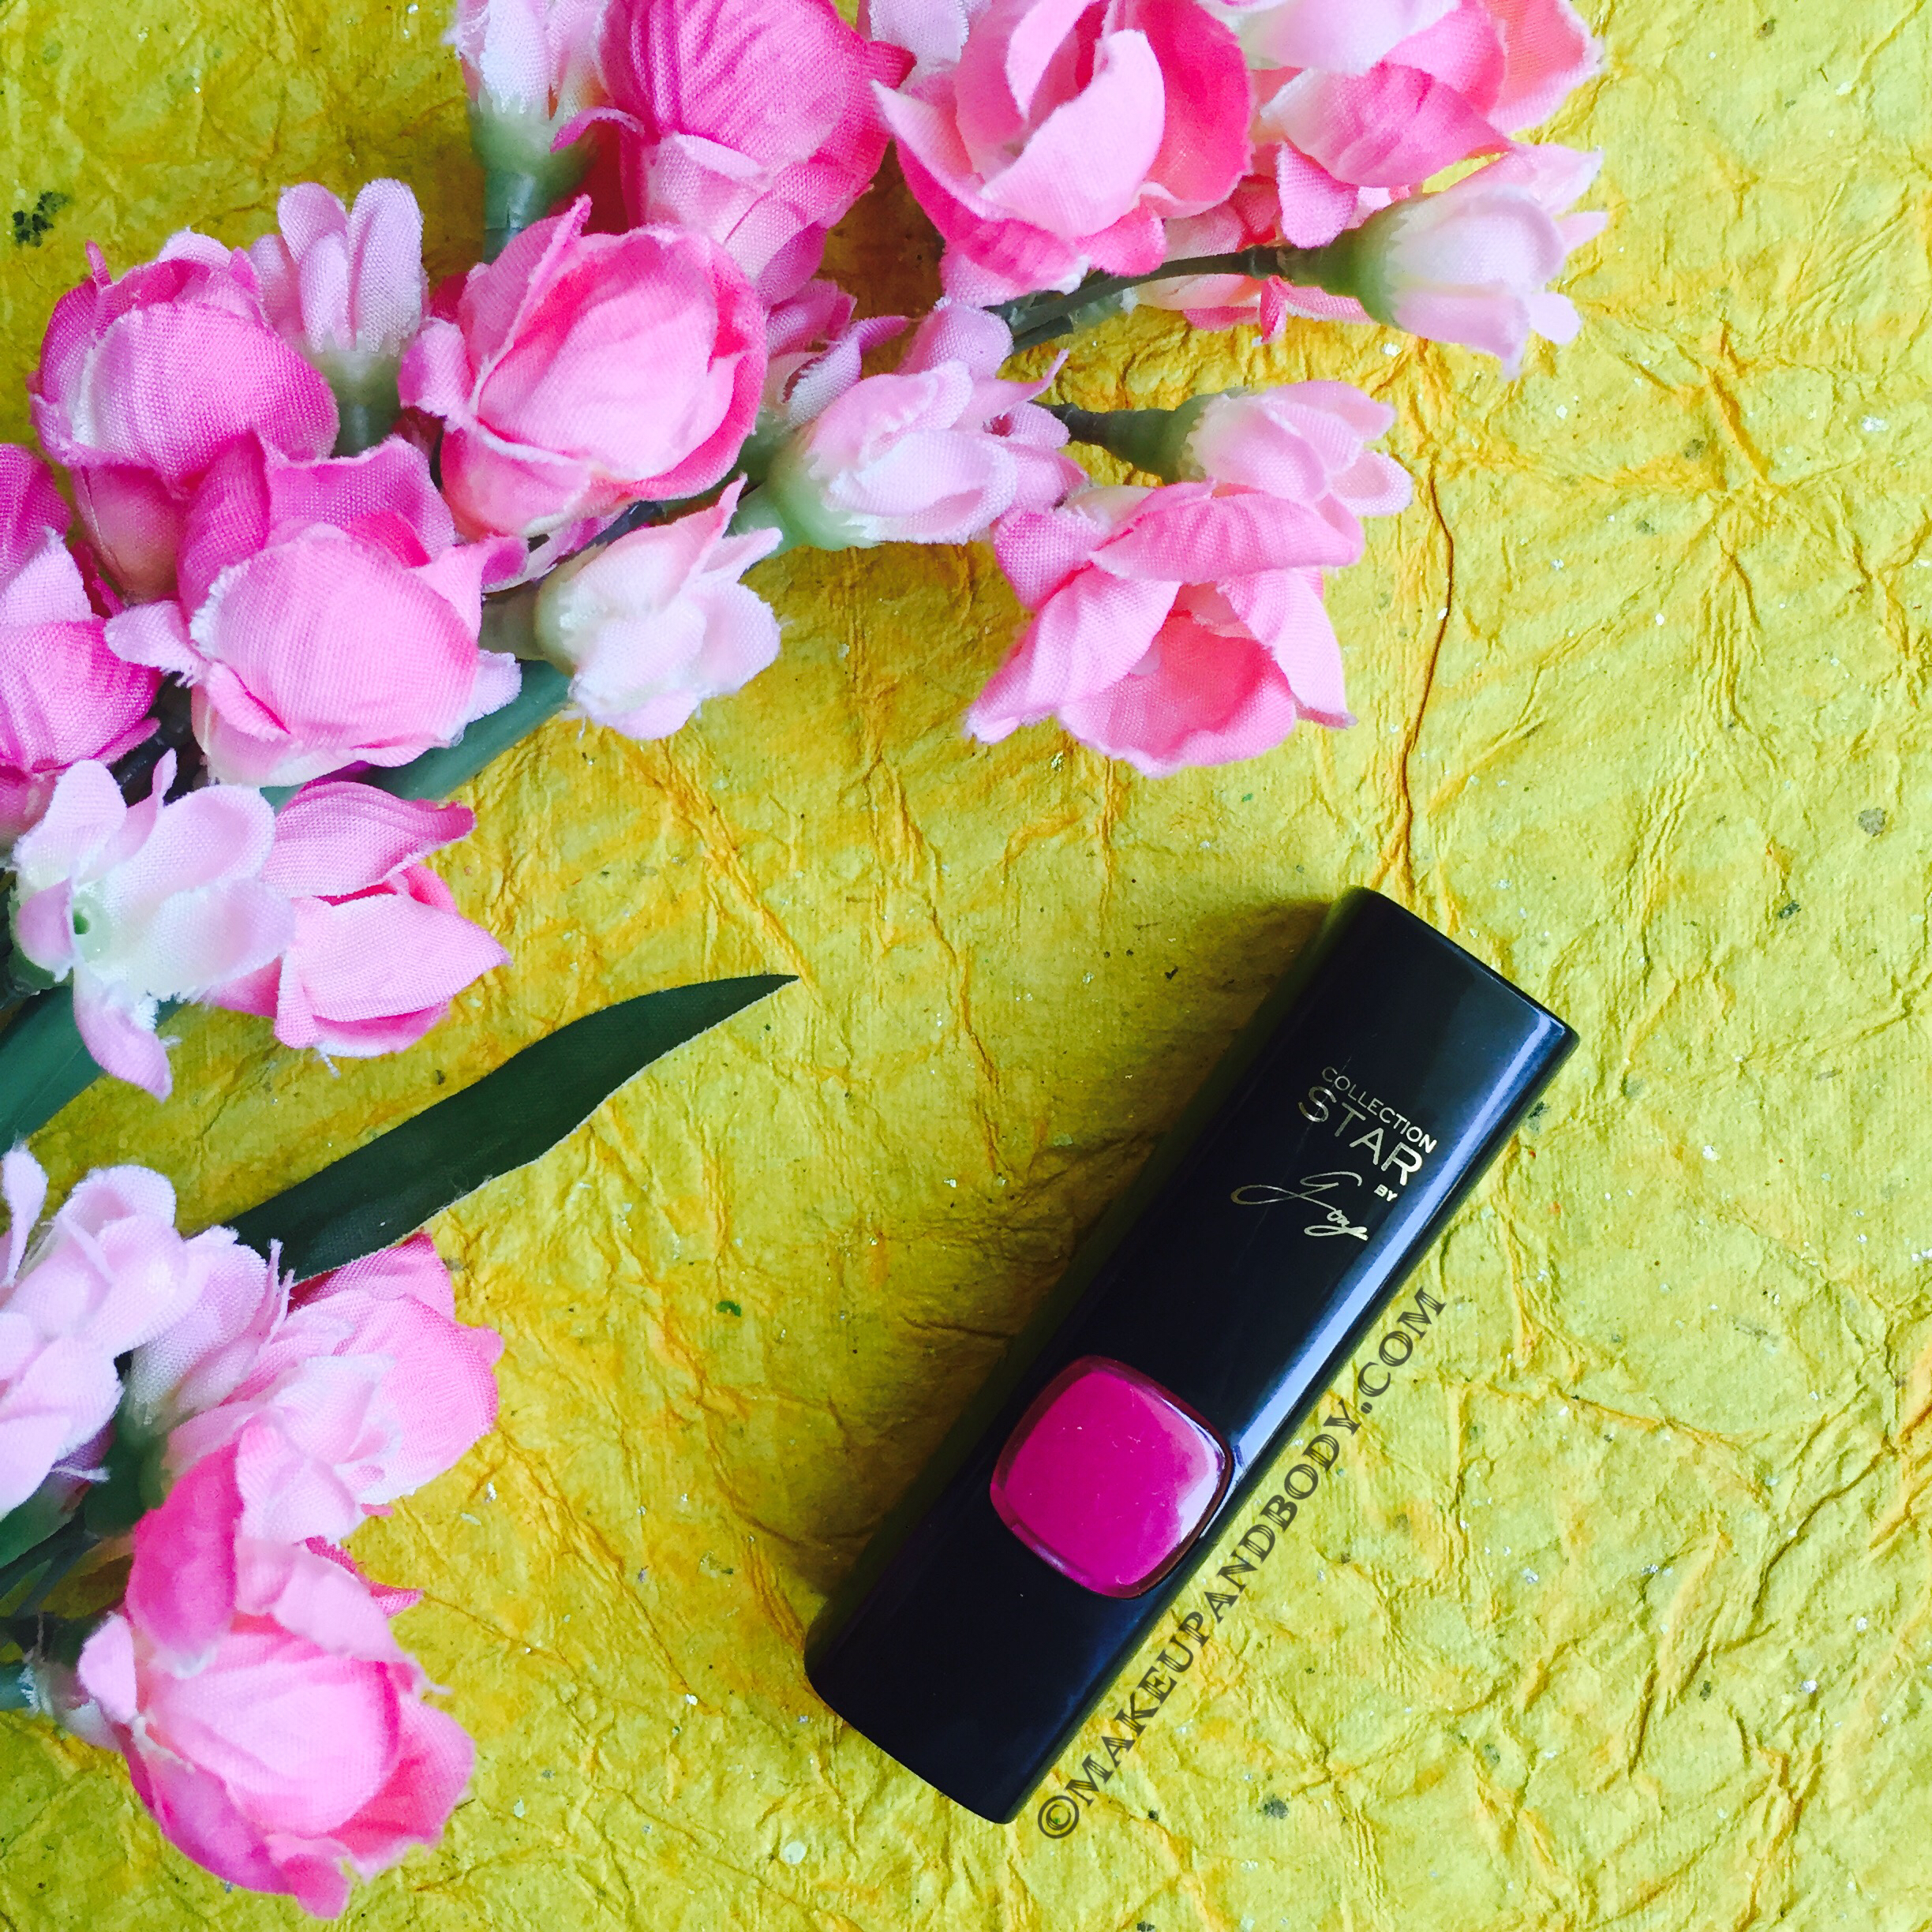 L'OREAL COLLECTIONS STAR PURE REDS LIPSTICK IN PURE AMARANTHE - REVIEW